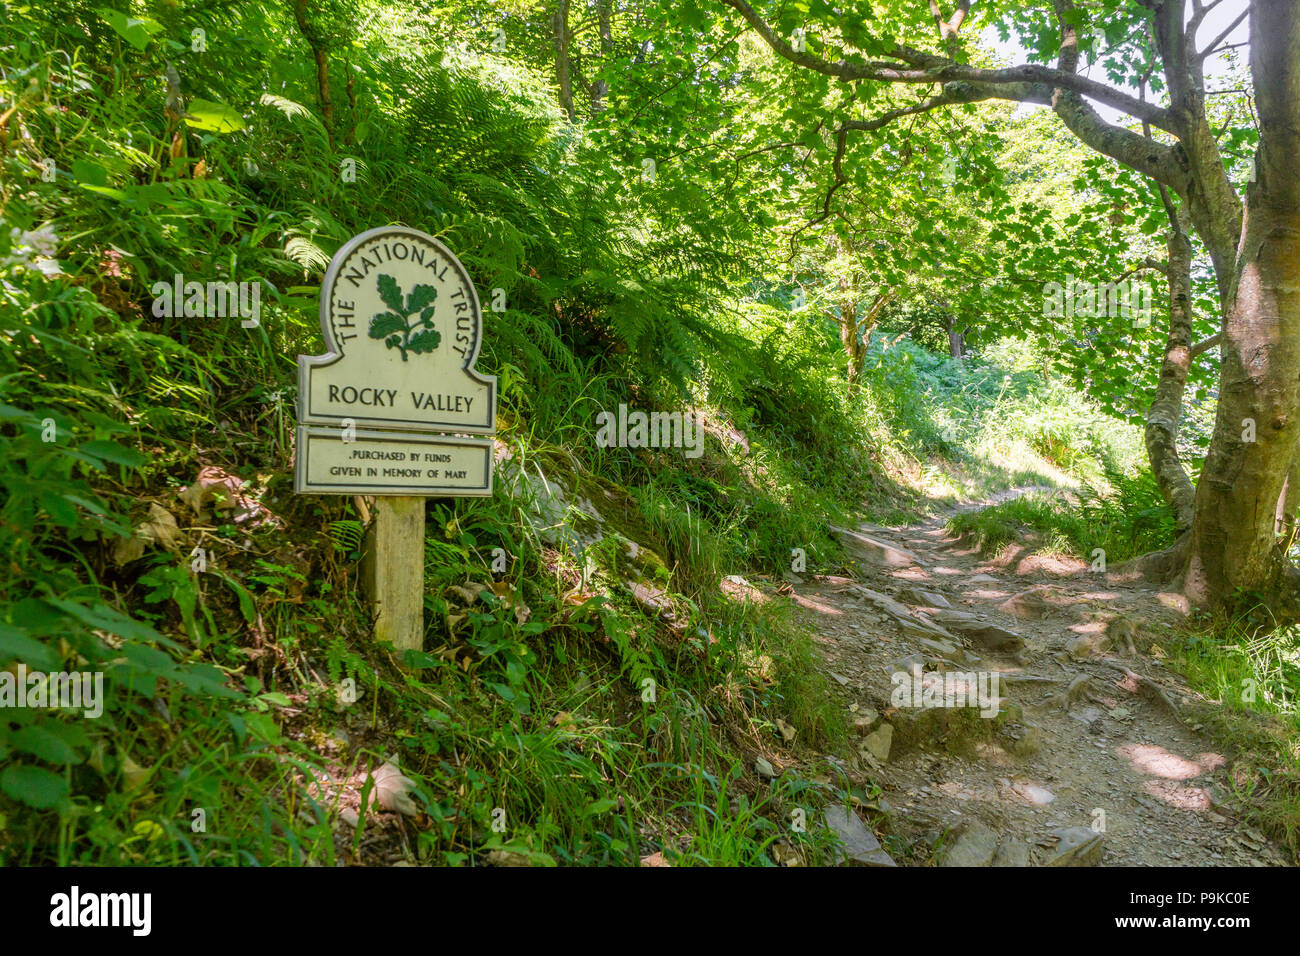 Abundant vegetation in Rocky Valley with National Trust sign summer 2018, North Cornwall, Cornwall, England, UK - Stock Image